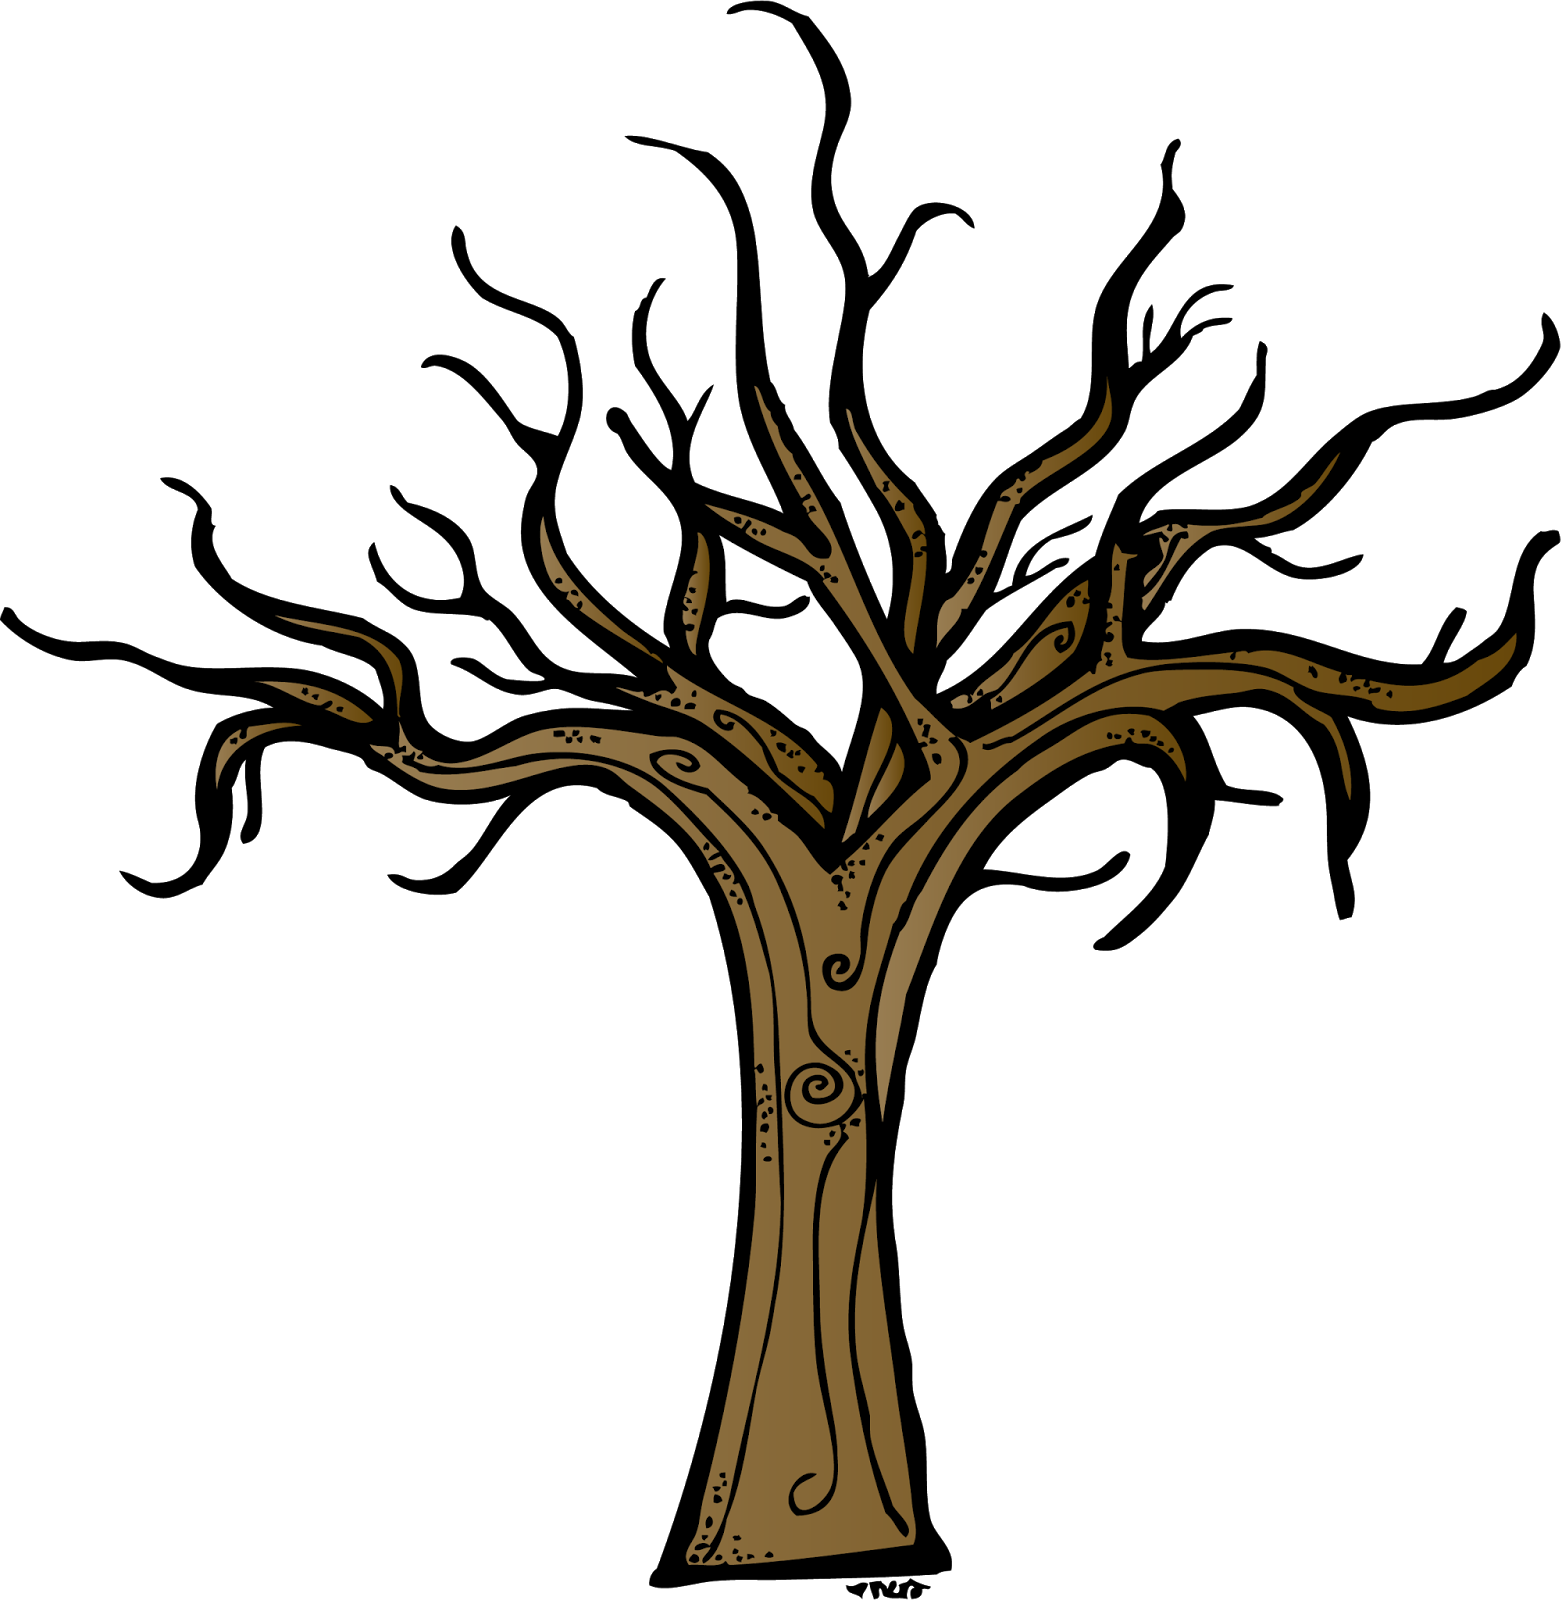 Dead Tree Trunk Clip Art